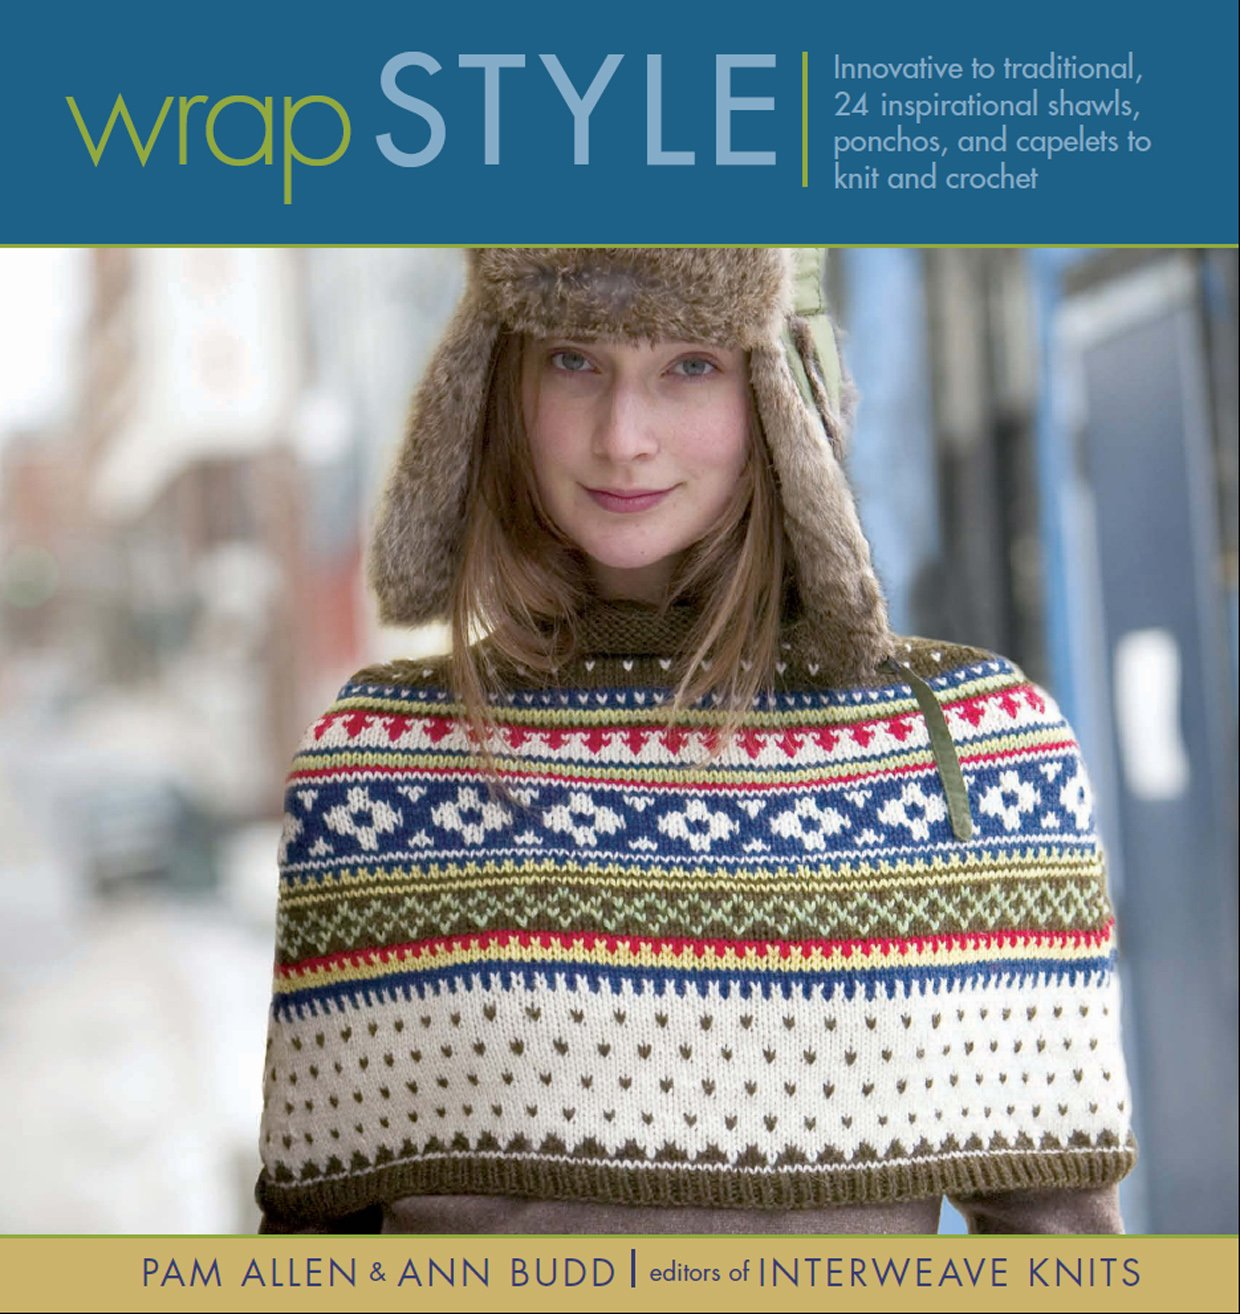 Wrap Style: Innovative to Traditional, 24 Inspirational Shawls, Ponchos & Capelets to Knit & Crochet pdf